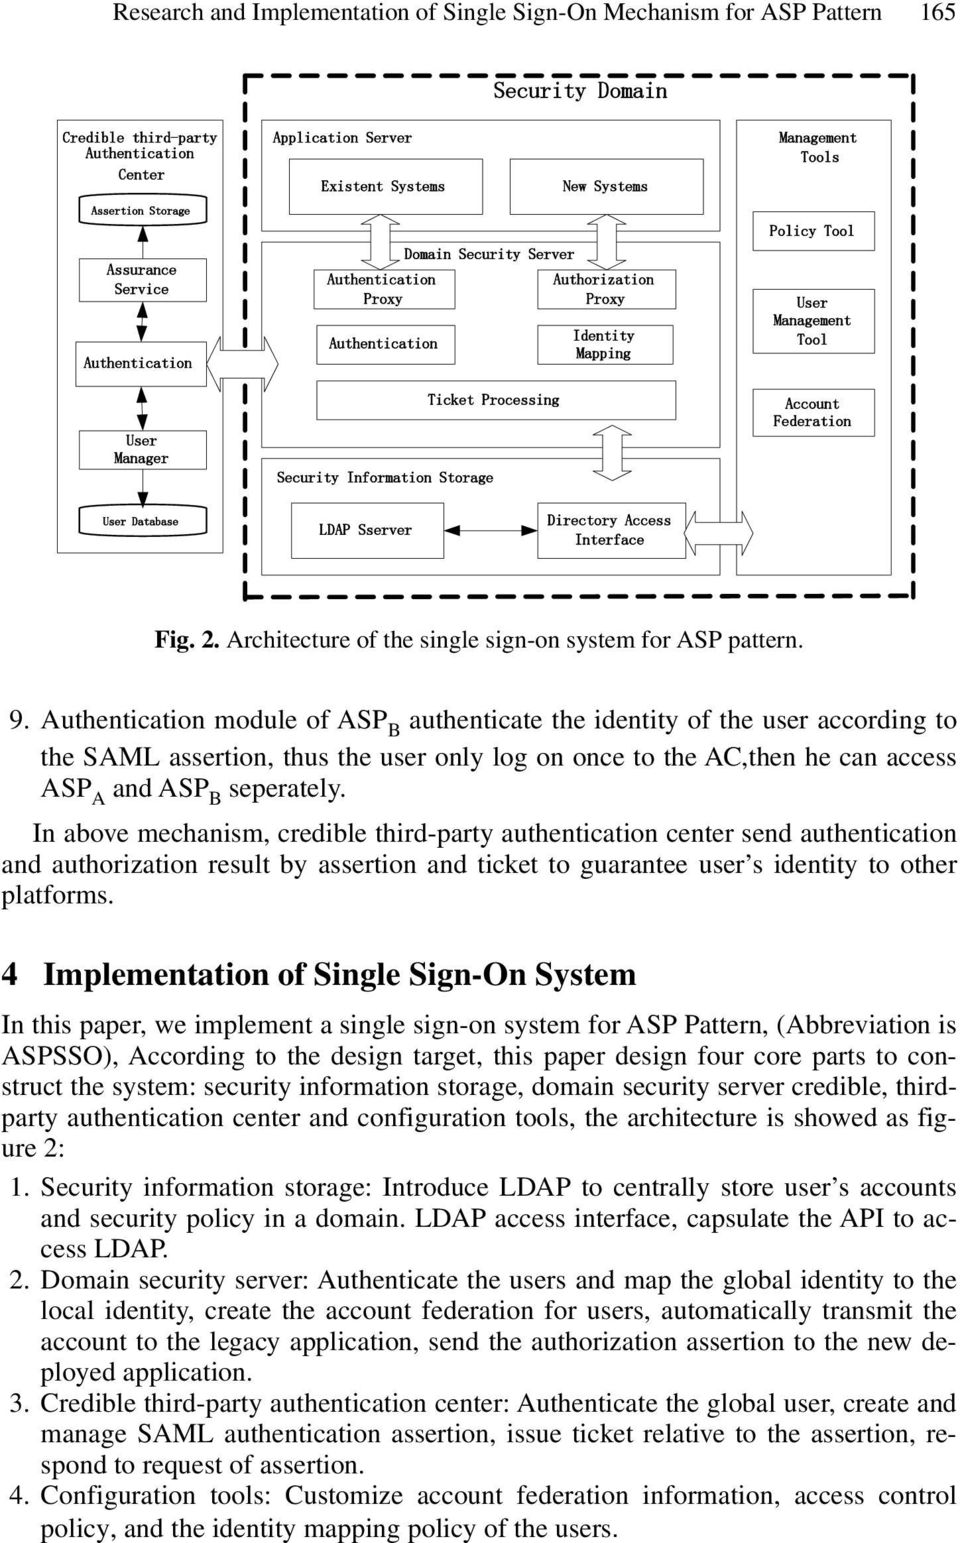 Access Interface Fig 2 Architecture of the single sign-on system for ASP pattern 9 module of ASP B authenticate the identity of the user according to the SAML assertion, thus the user only log on